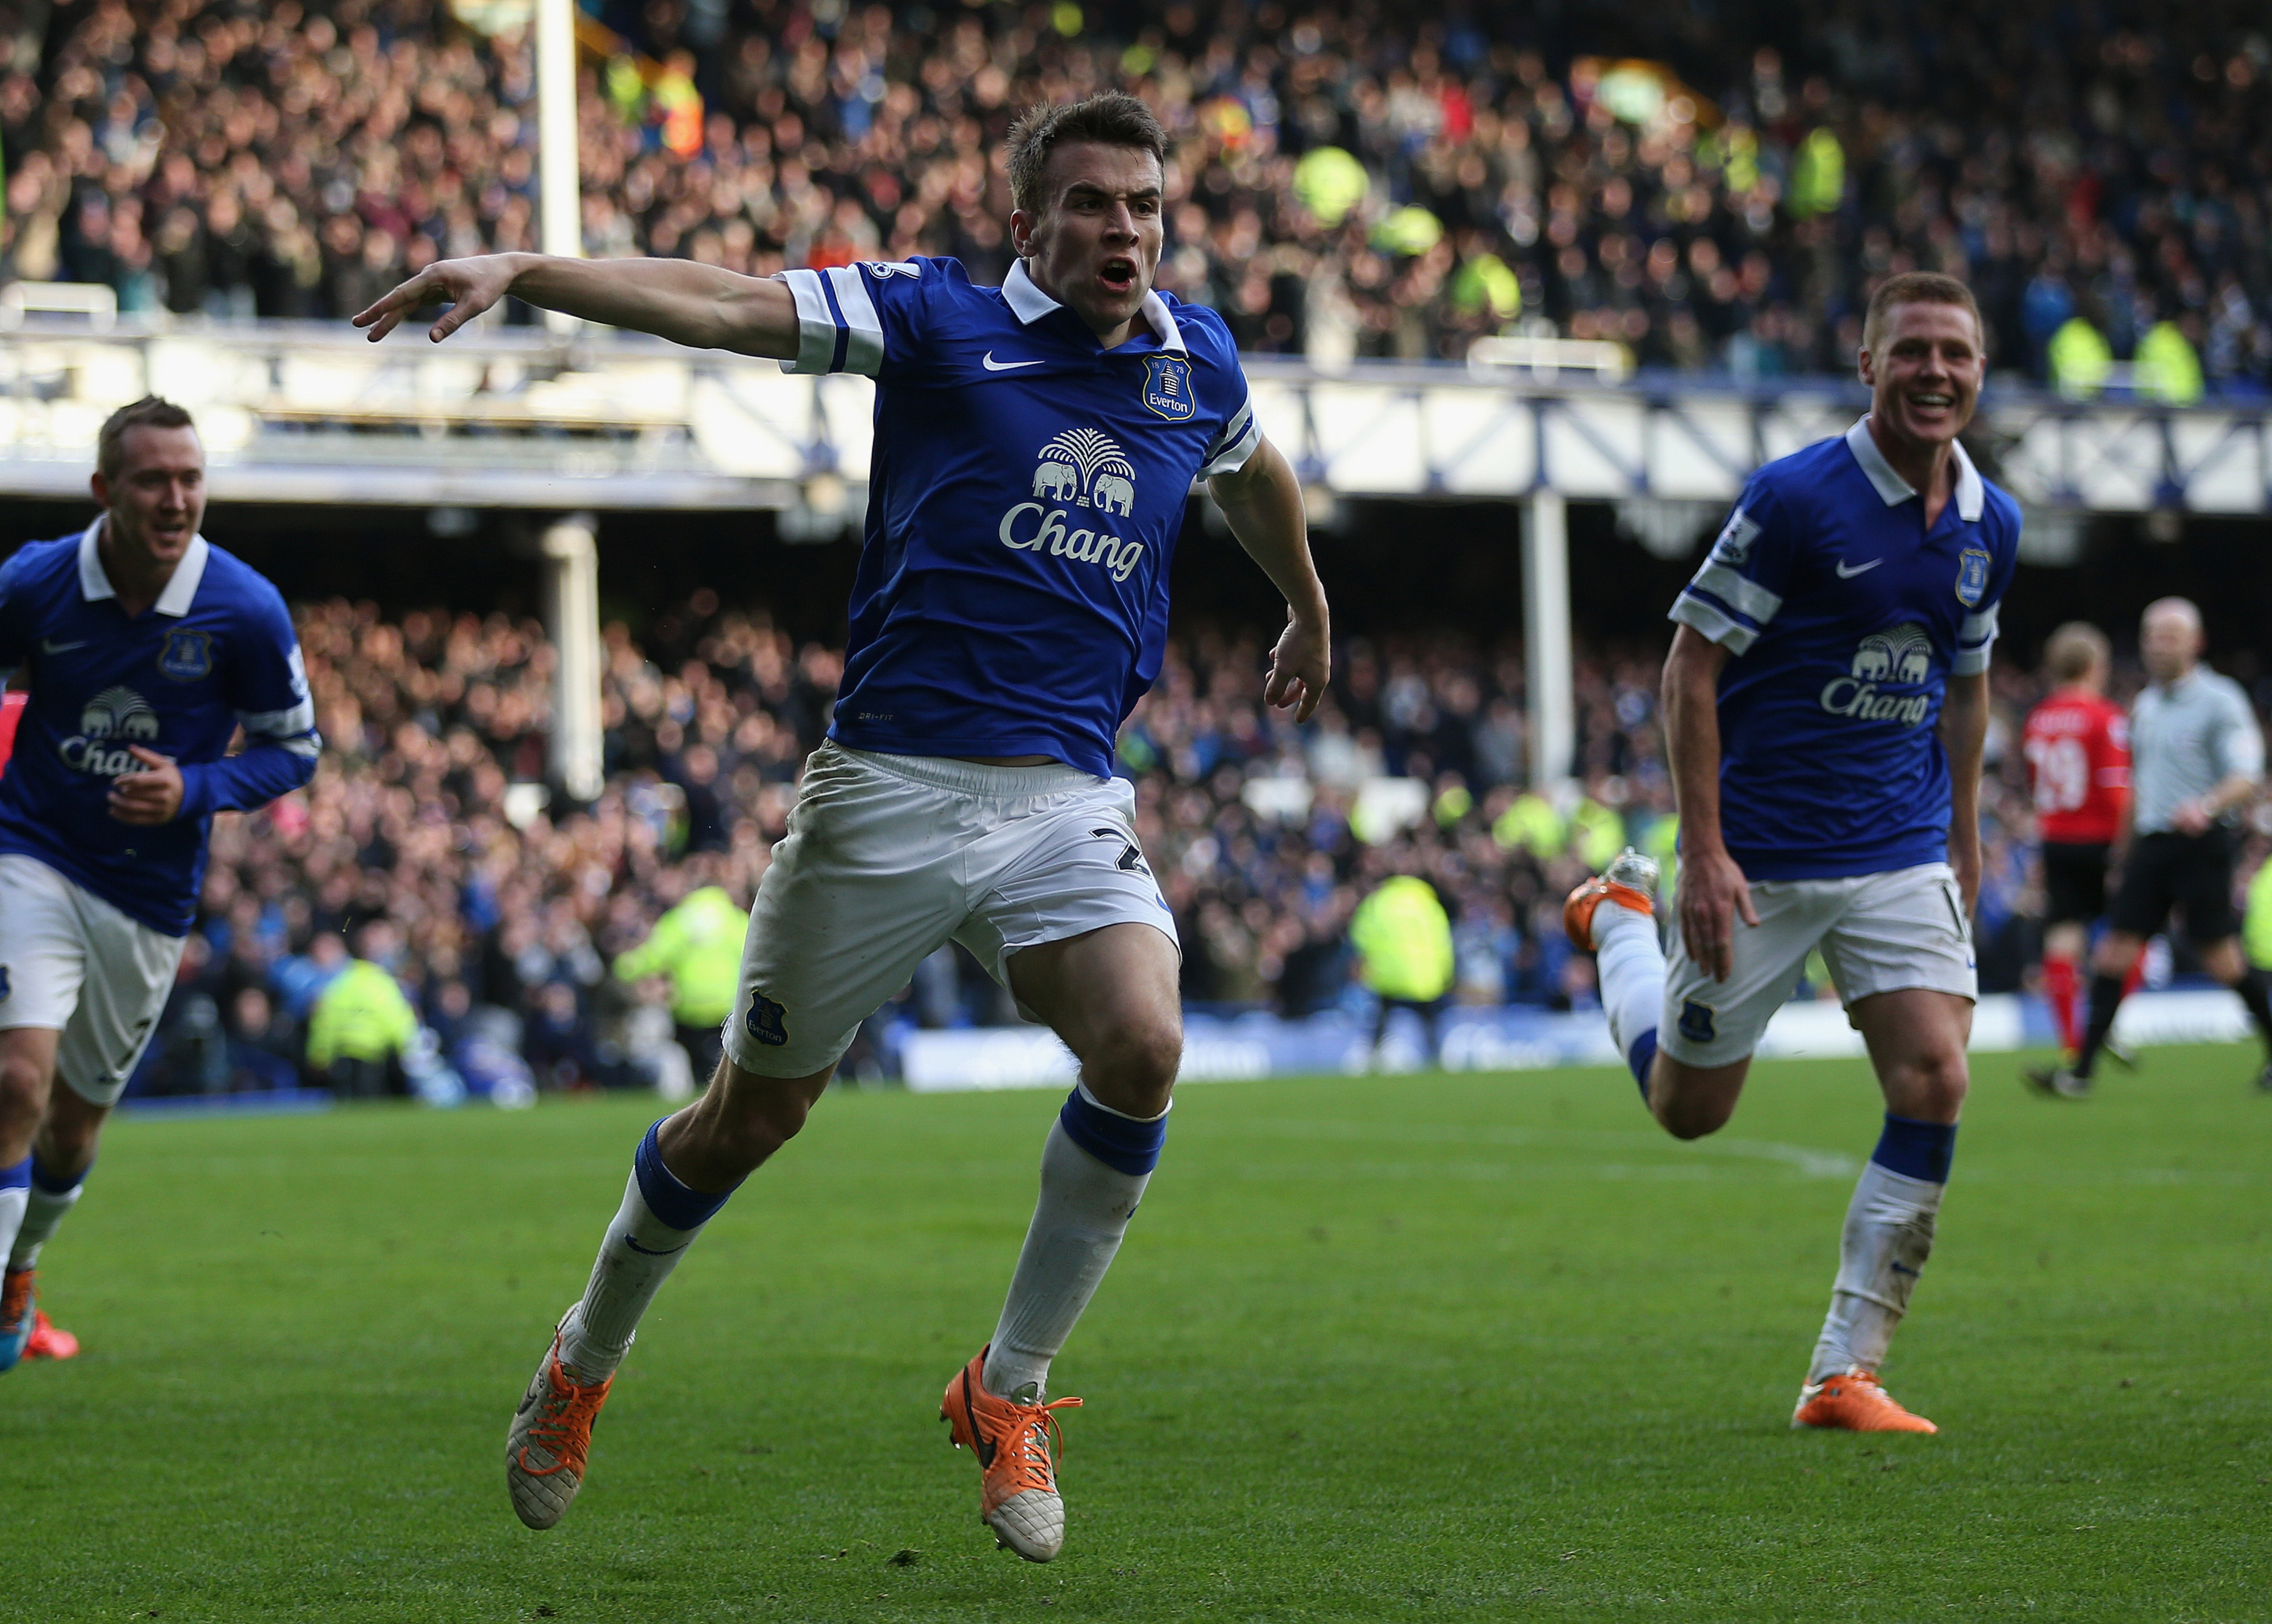 Seamus Coleman celebrates after scoring the game-winning goal in last year's home fixture against Cardiff City.